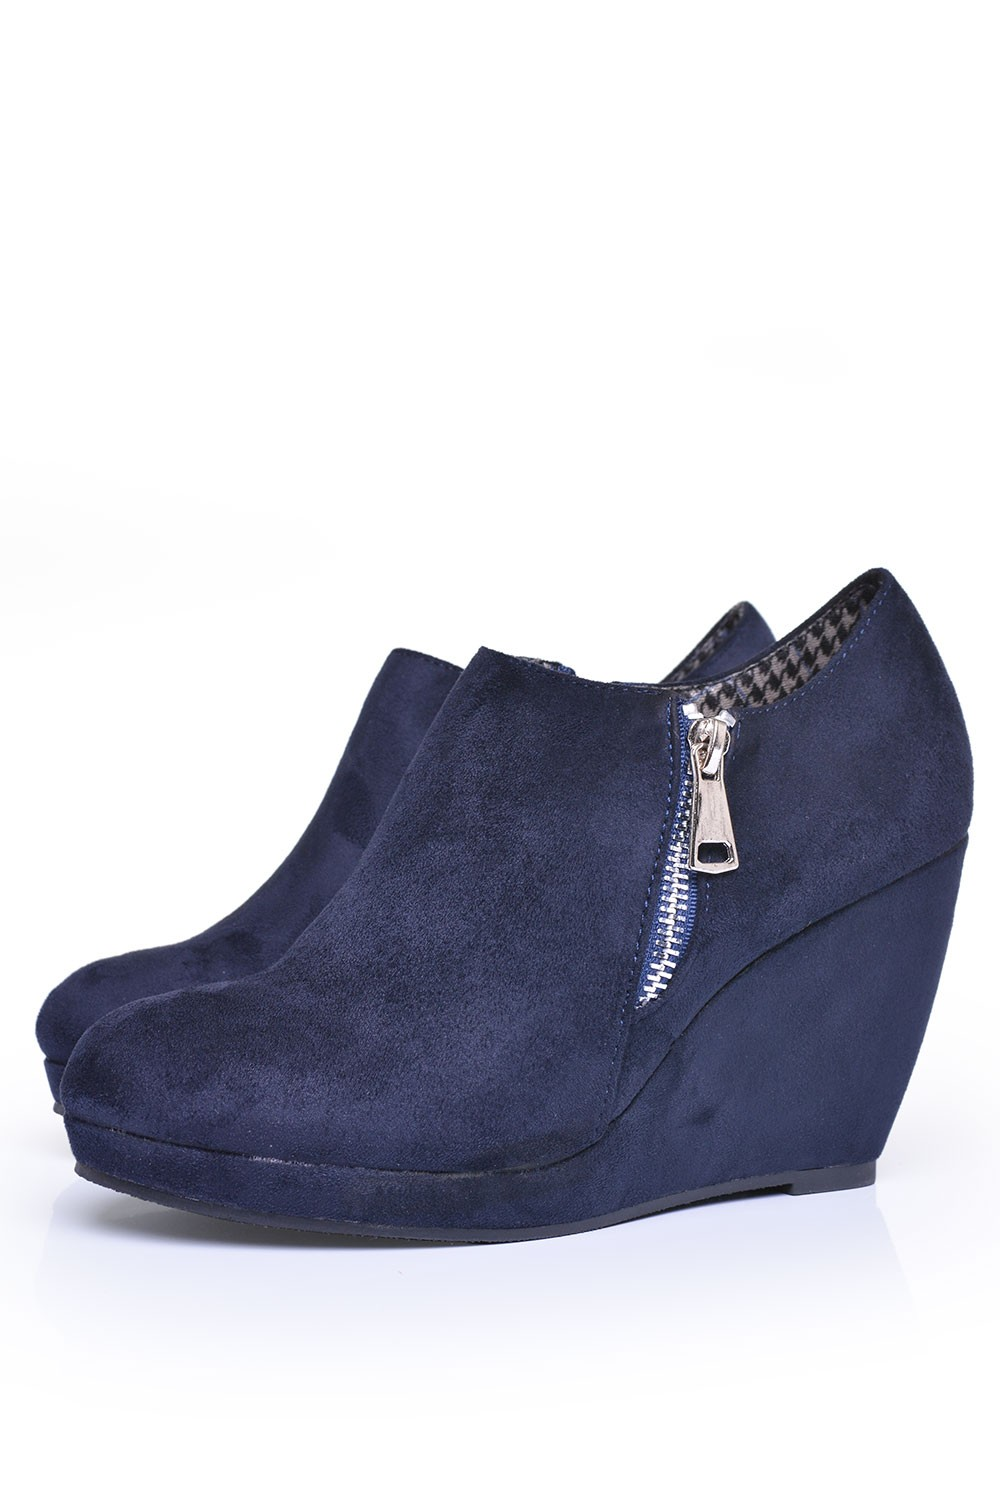 sole city elyza wedge boot in navy iclothing